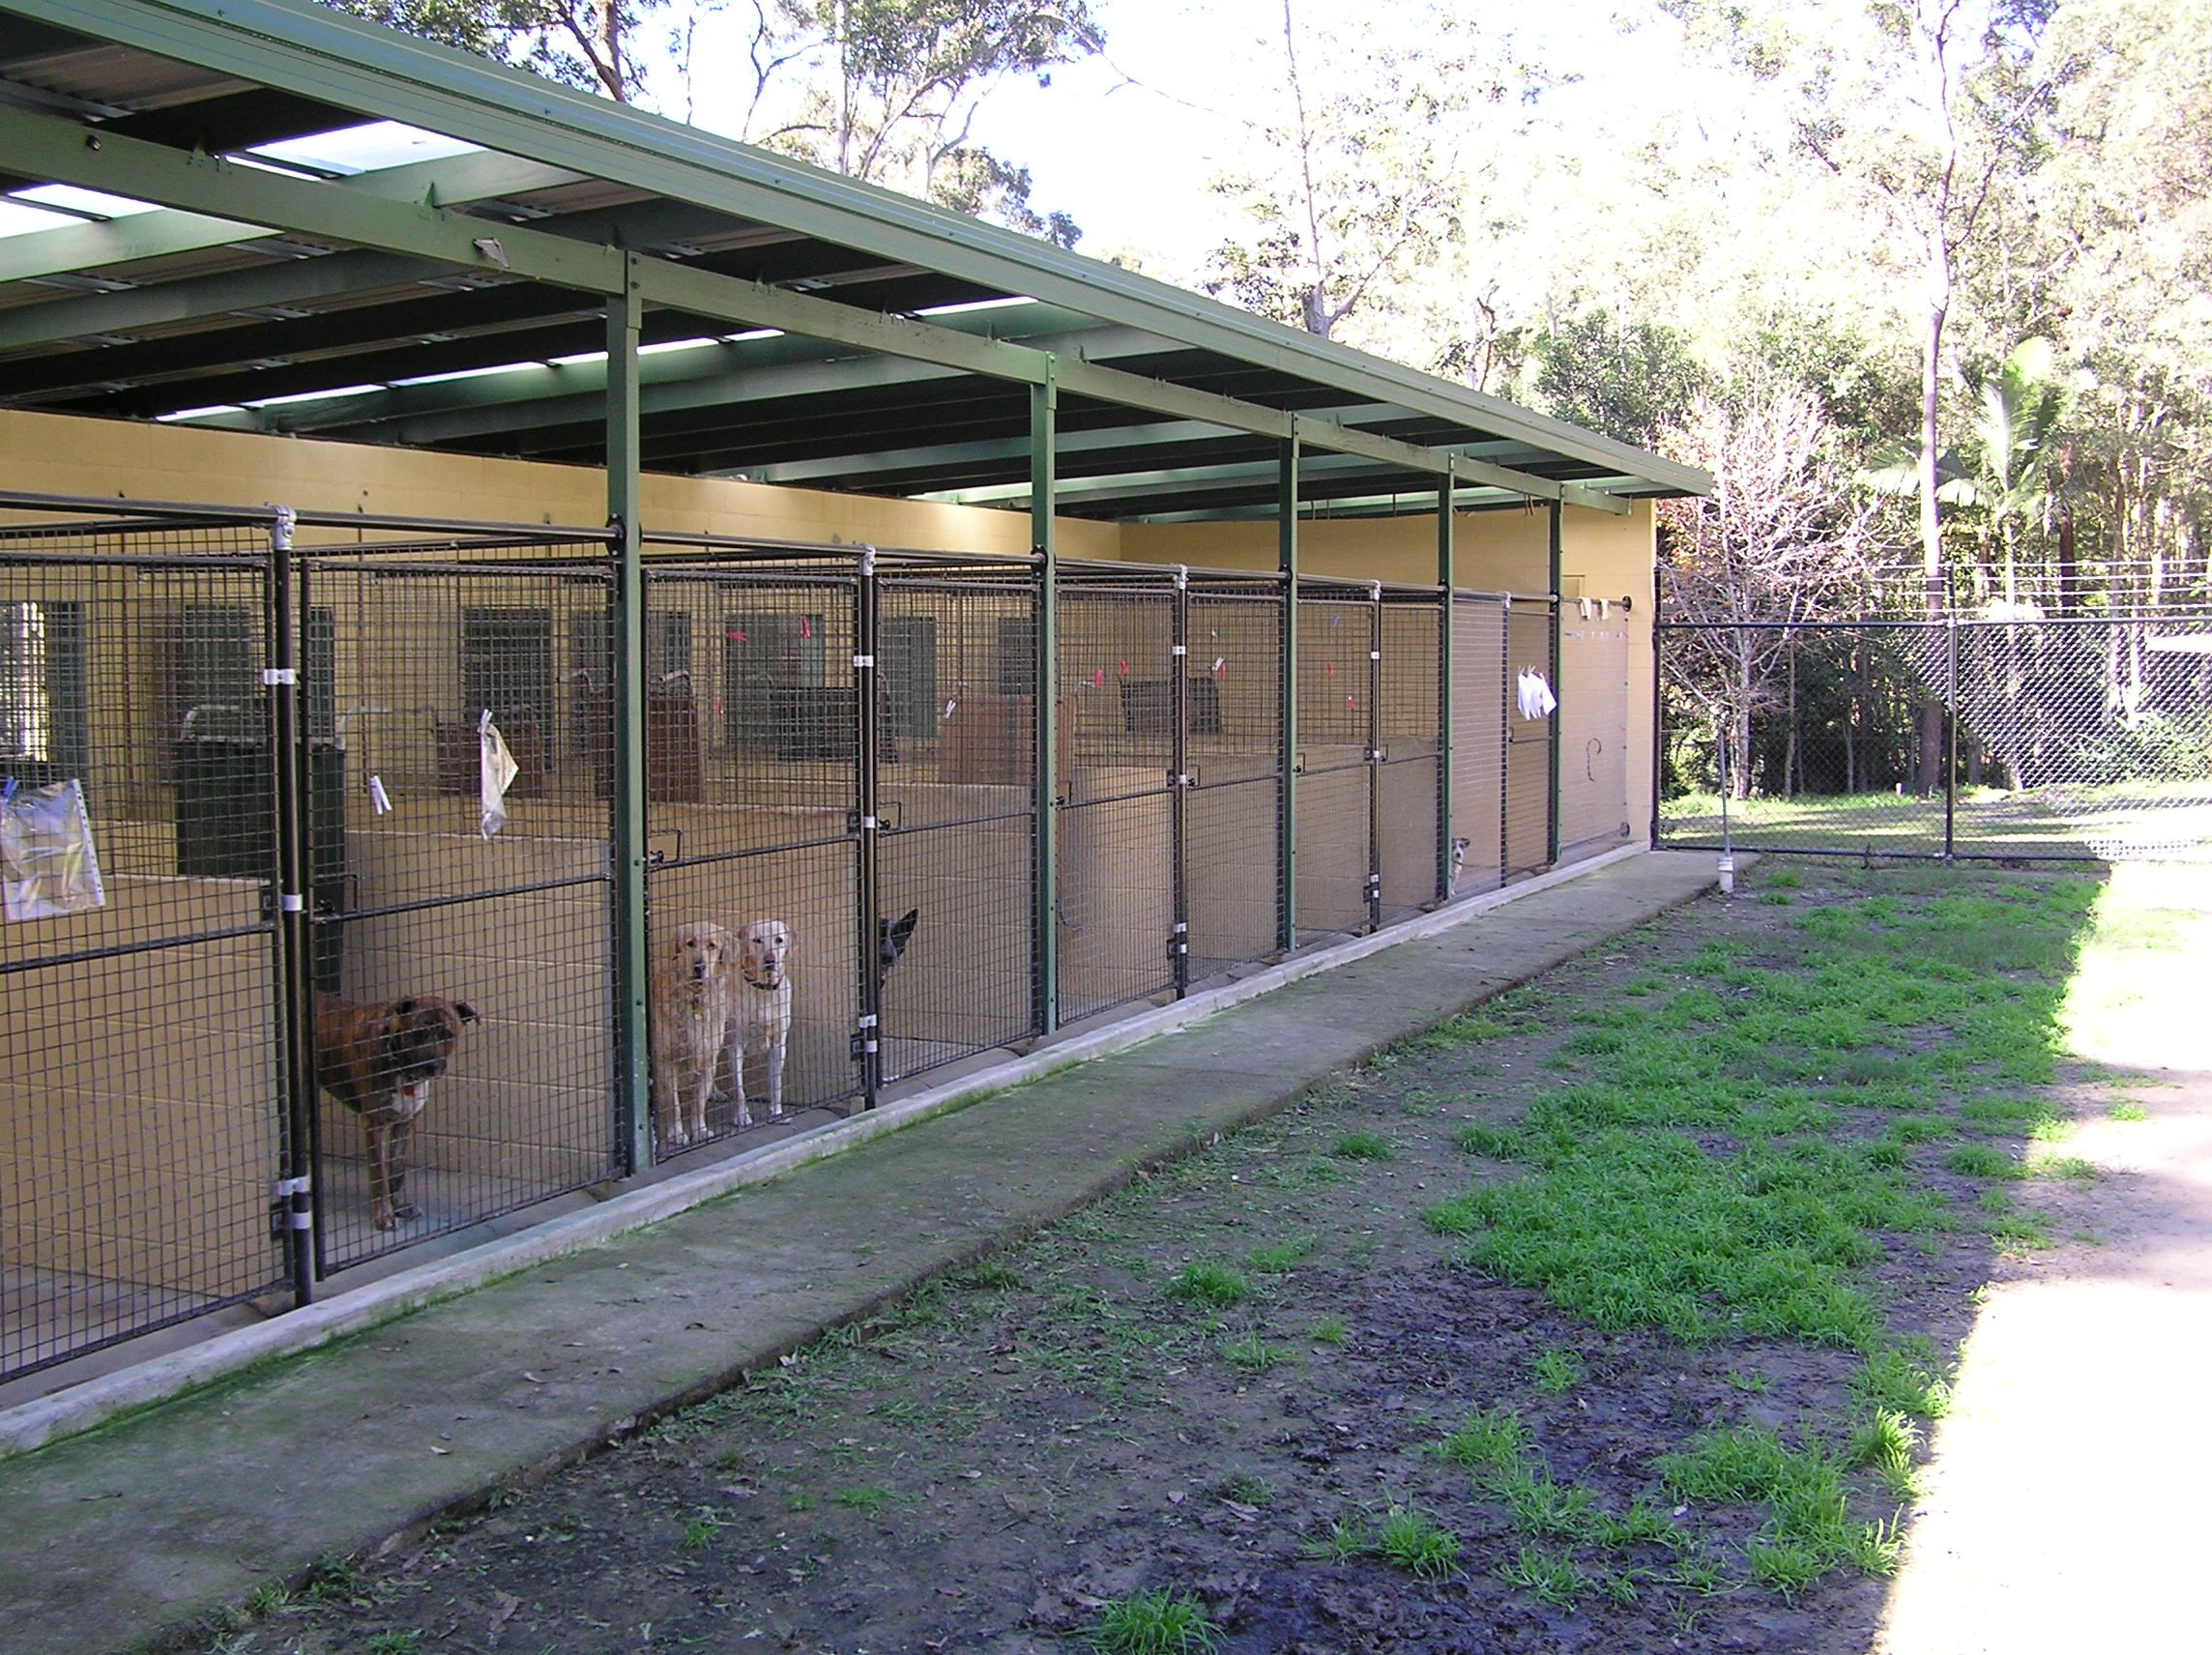 best dog kennel designs stafford boarding kennel - Dog Kennel Design Ideas